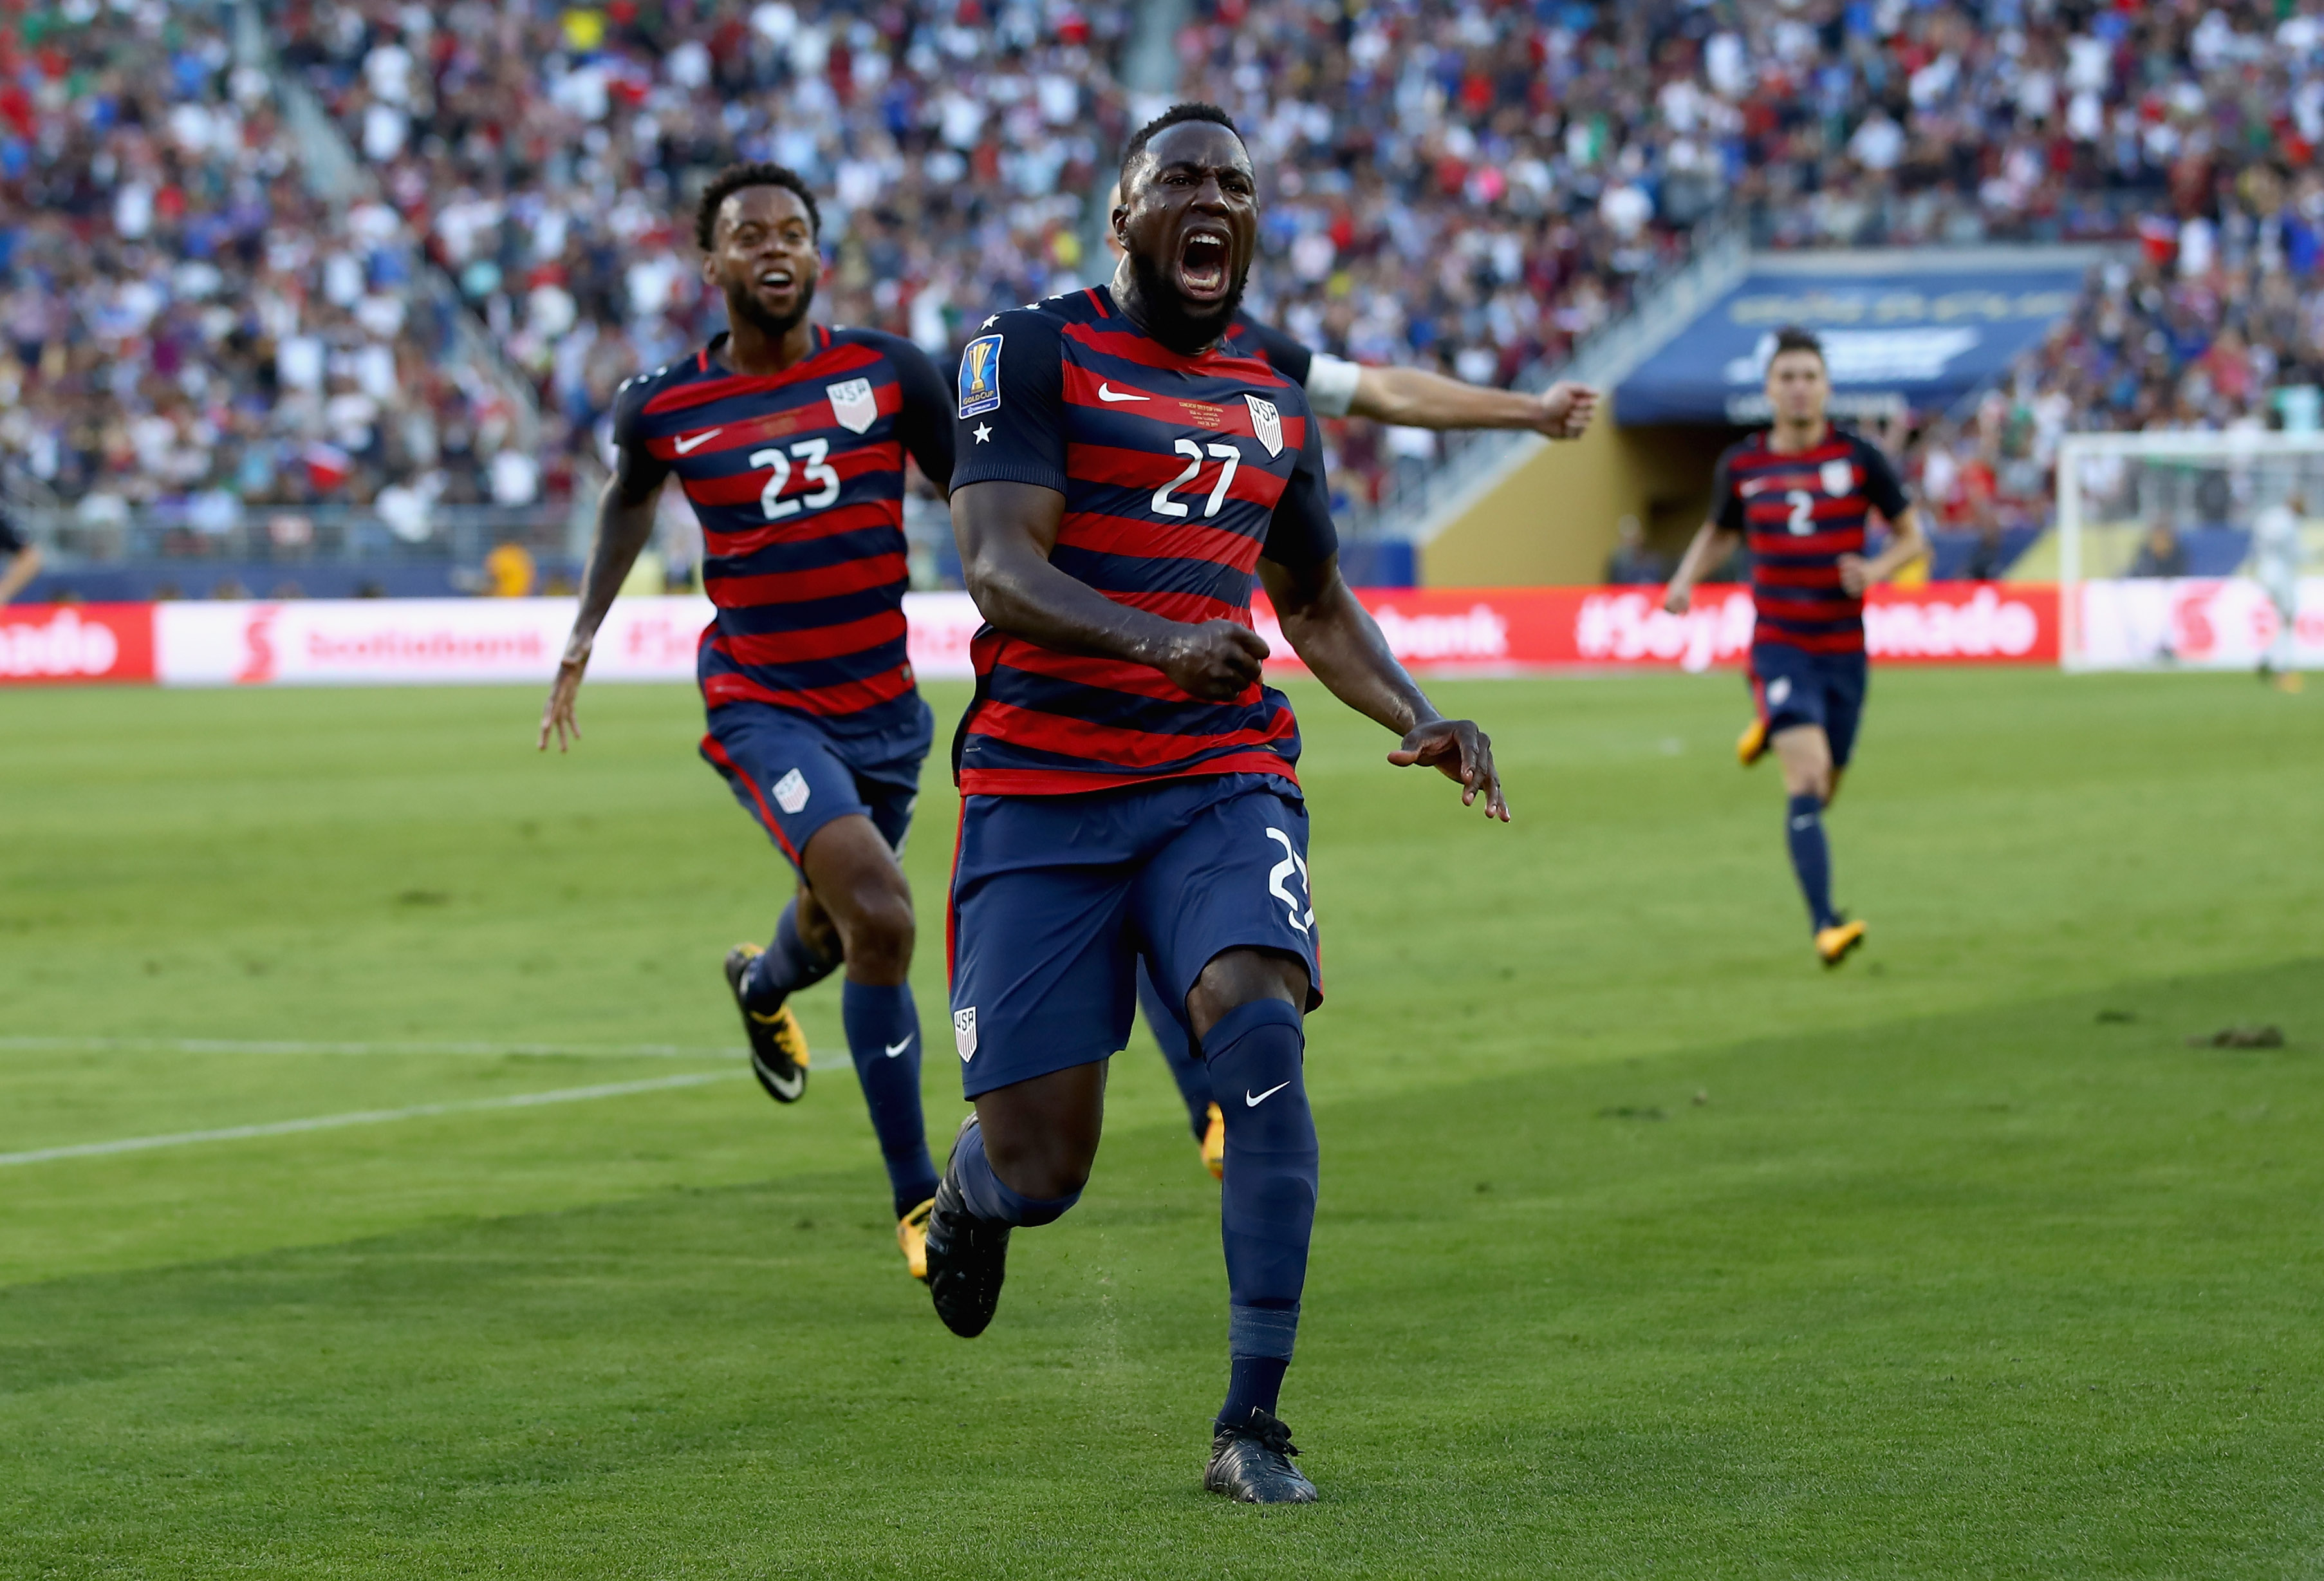 67aff88f5f7 WATCH  Jozy Altidore s world-class free kick gives USMNT lead in 2017 Gold  Cup Final